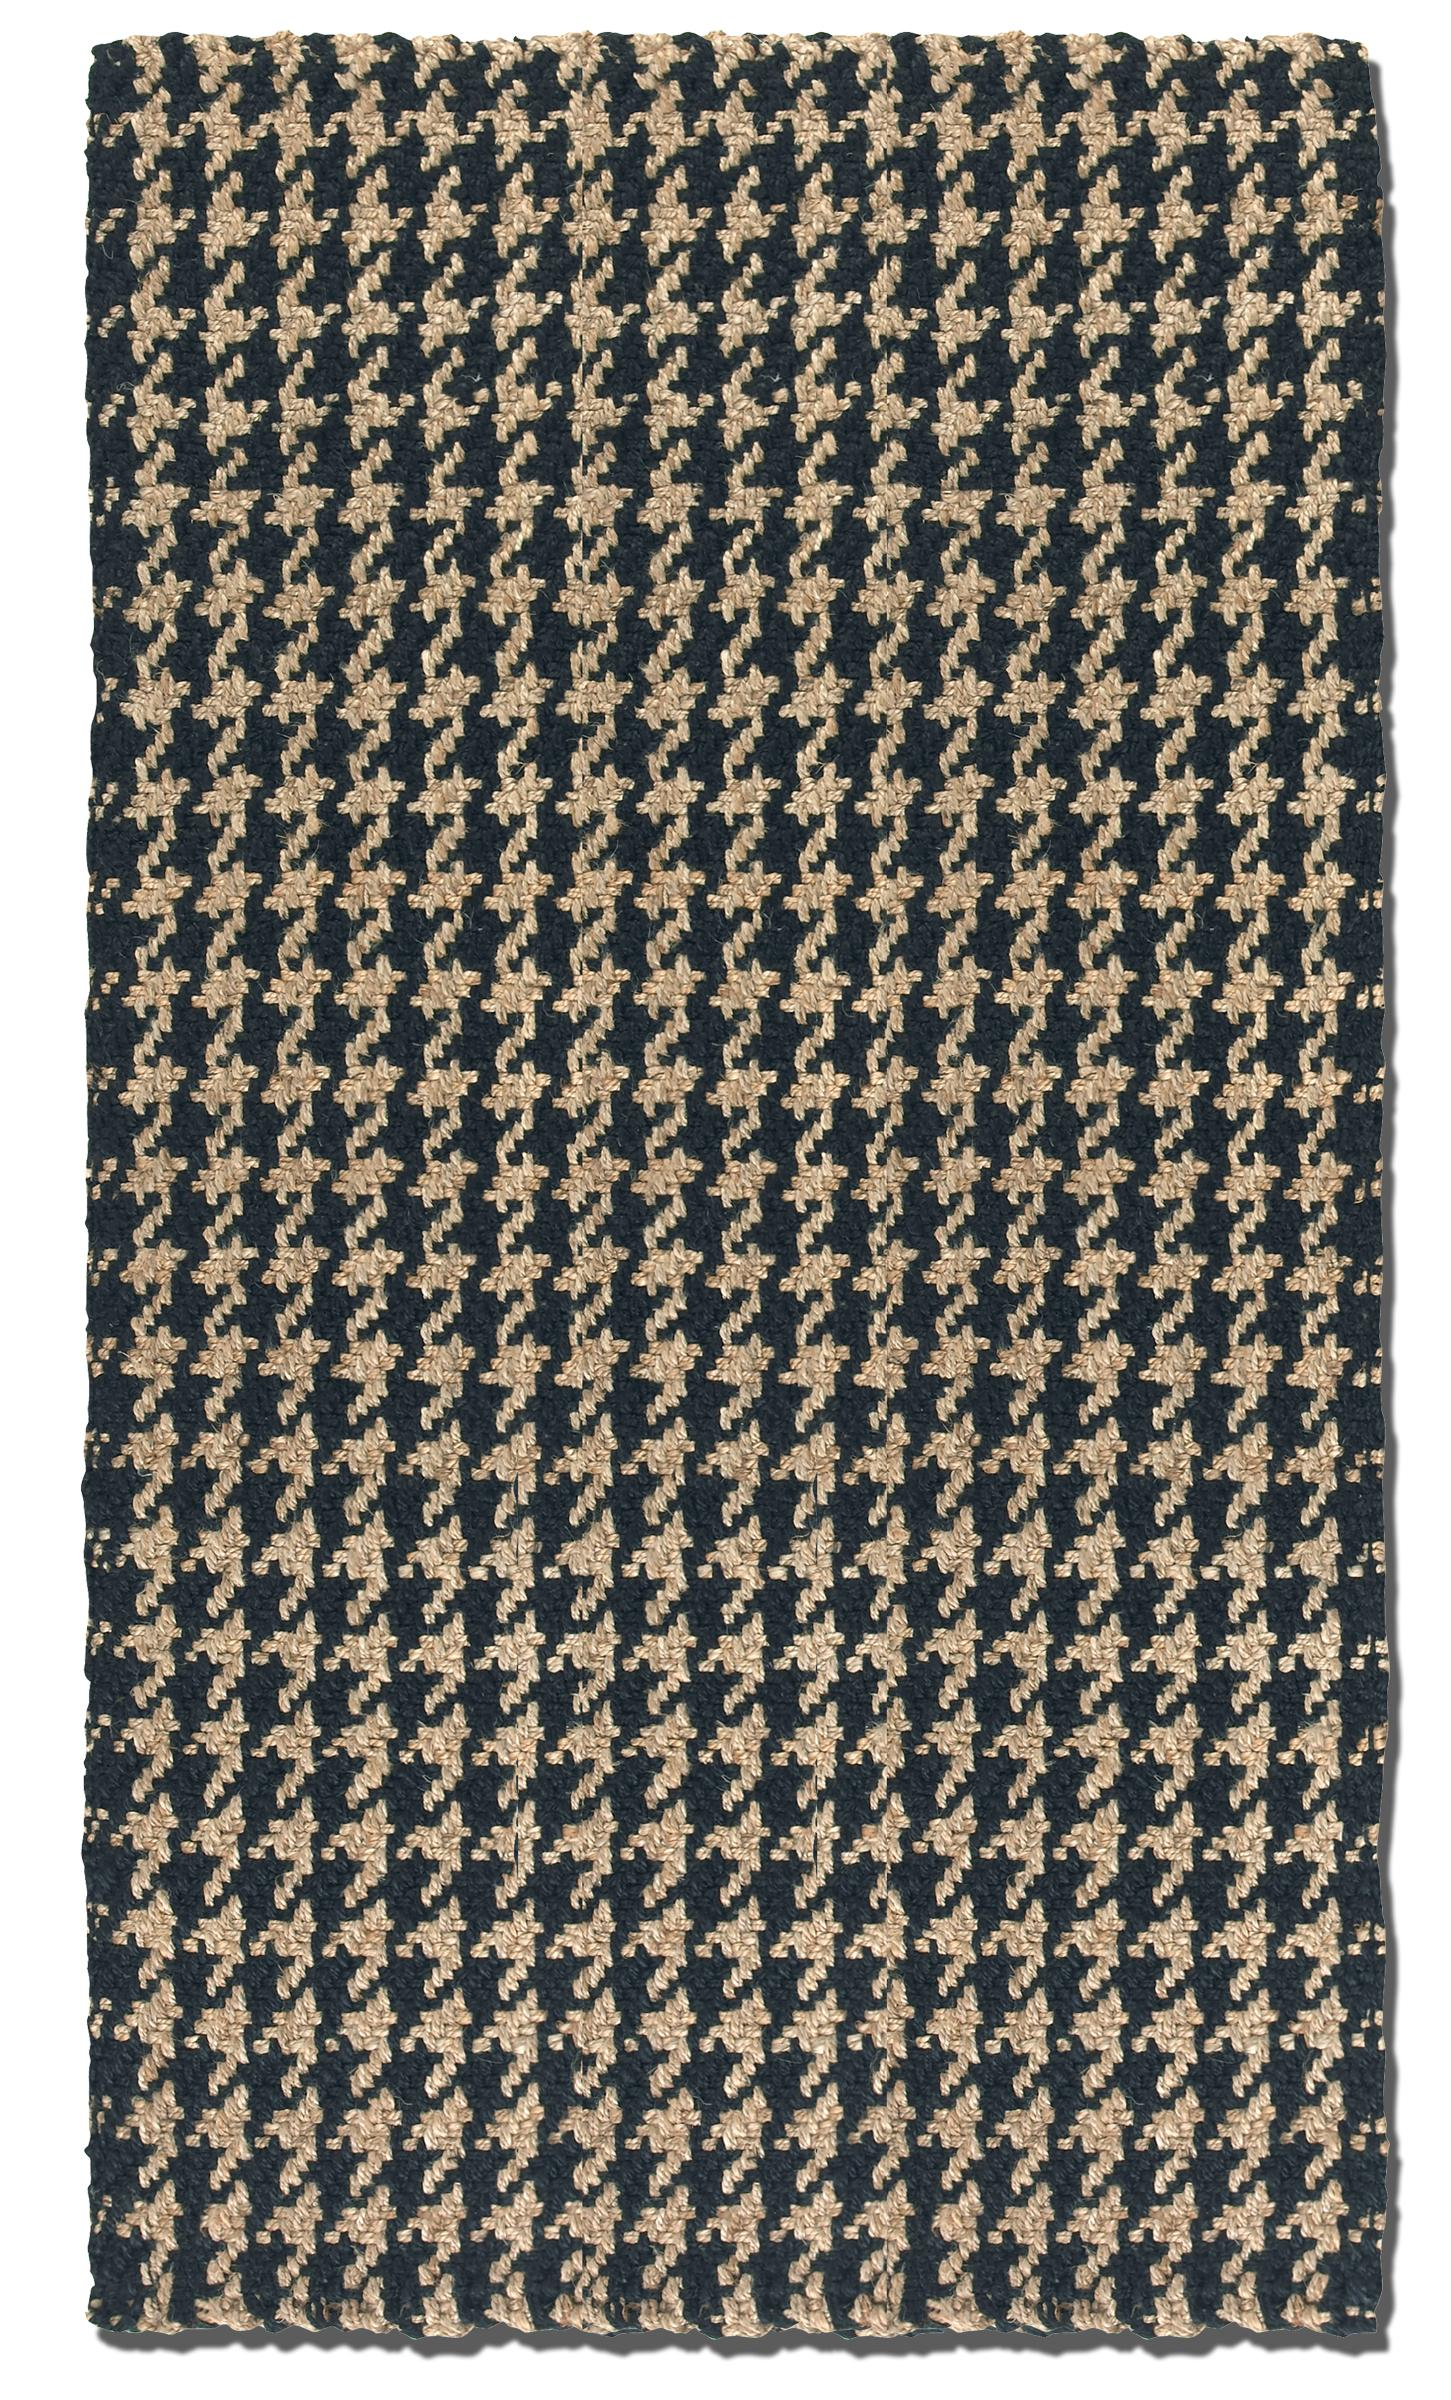 Uttermost Rugs Bengal 5 X 8  - Item Number: 71036-5